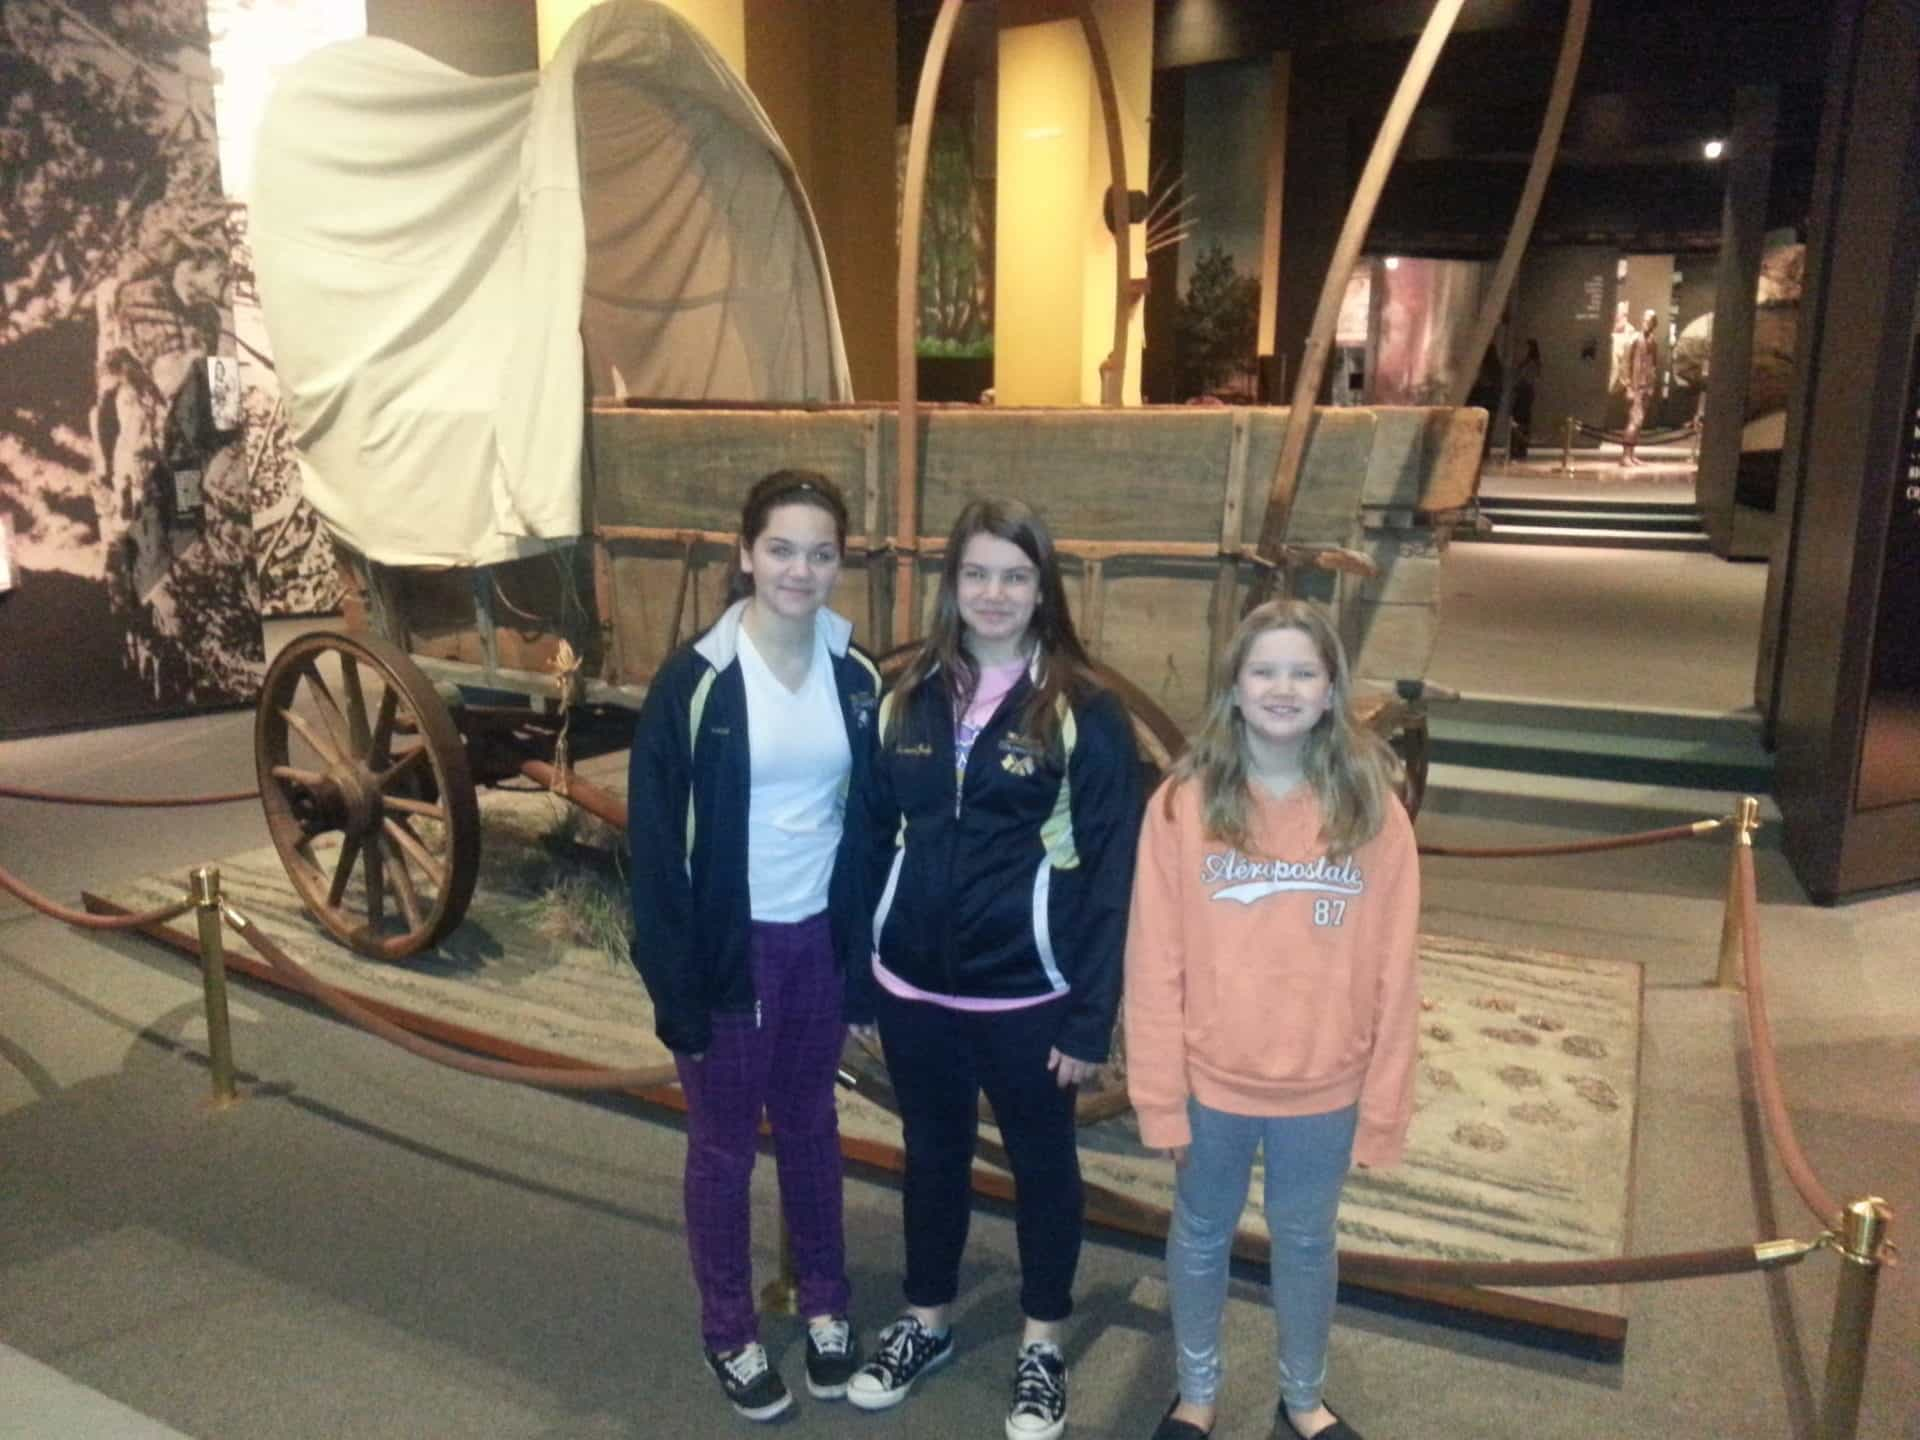 Gateway Arch, St Louis - Covered Wagon